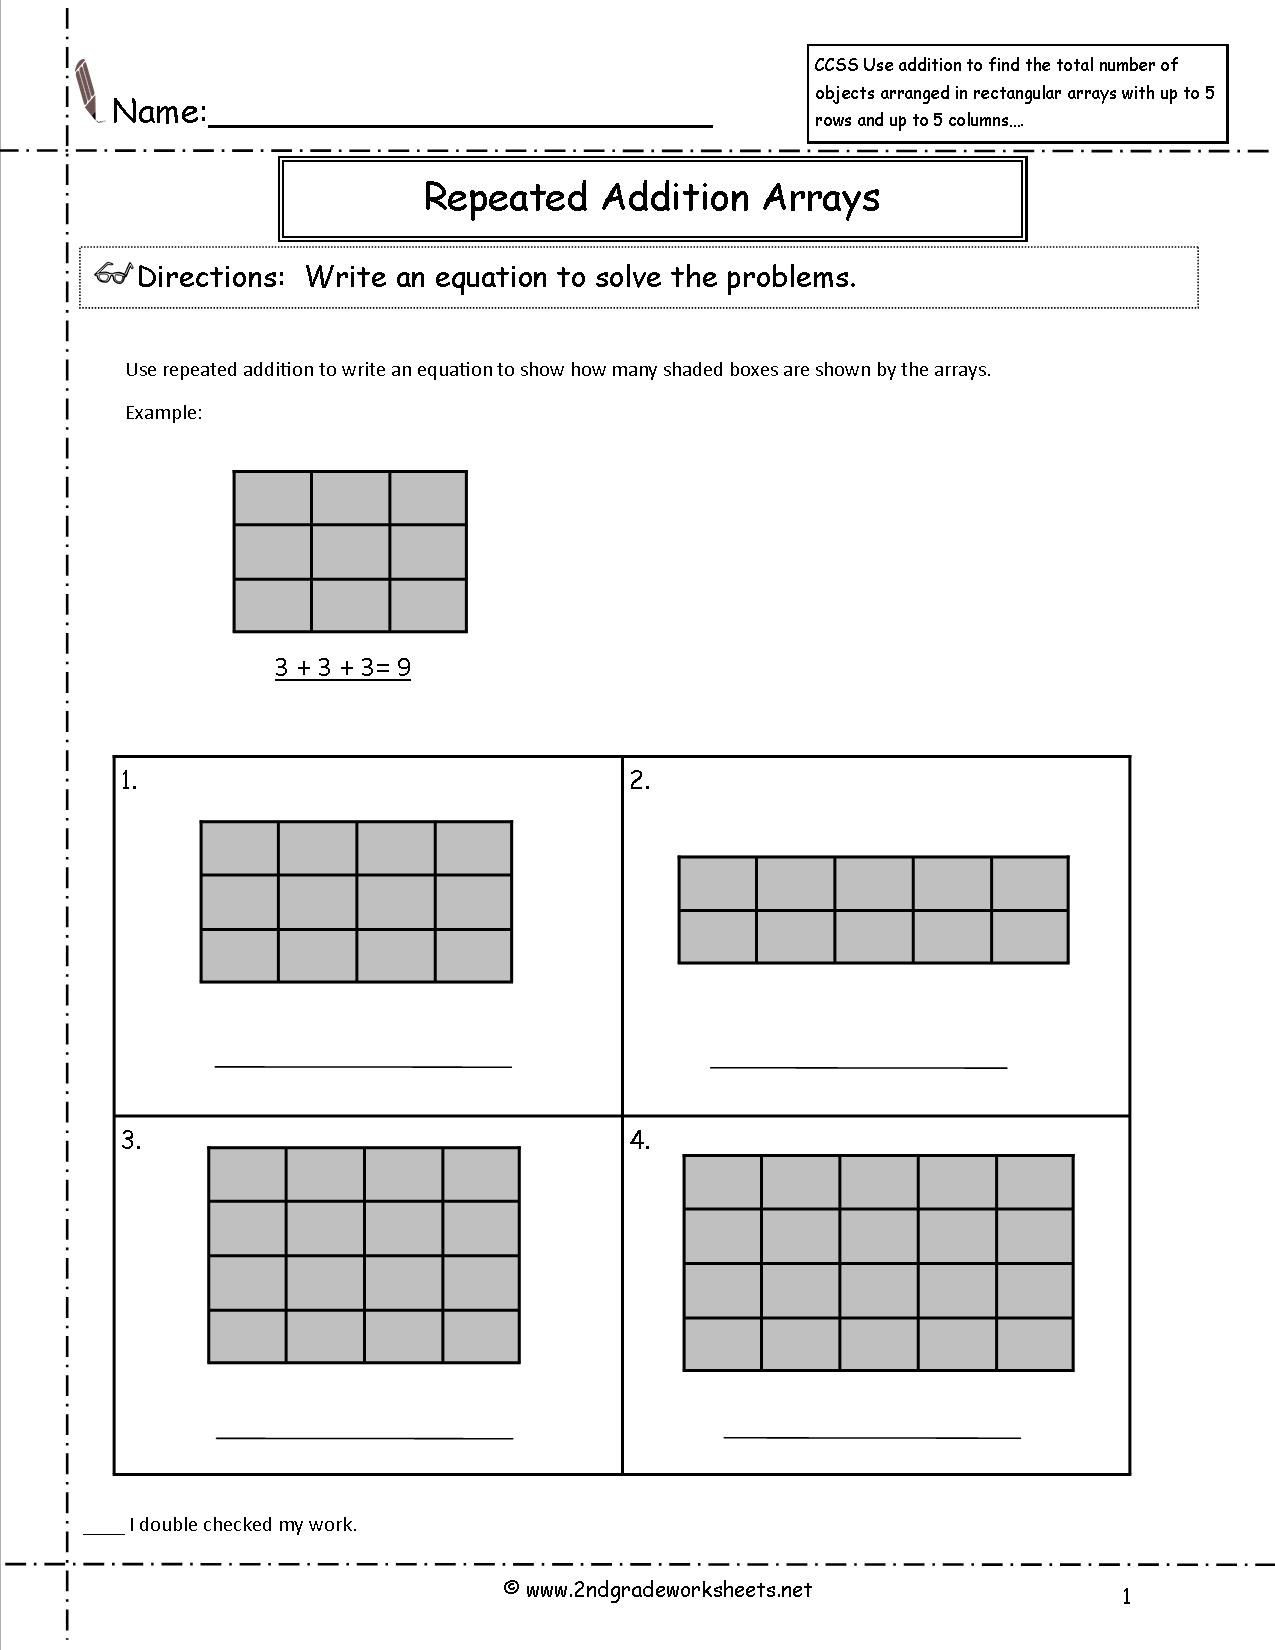 Repeated Addition Worksheets 2nd Grade Free Array Worksheets 2nd Grade Free Preschool